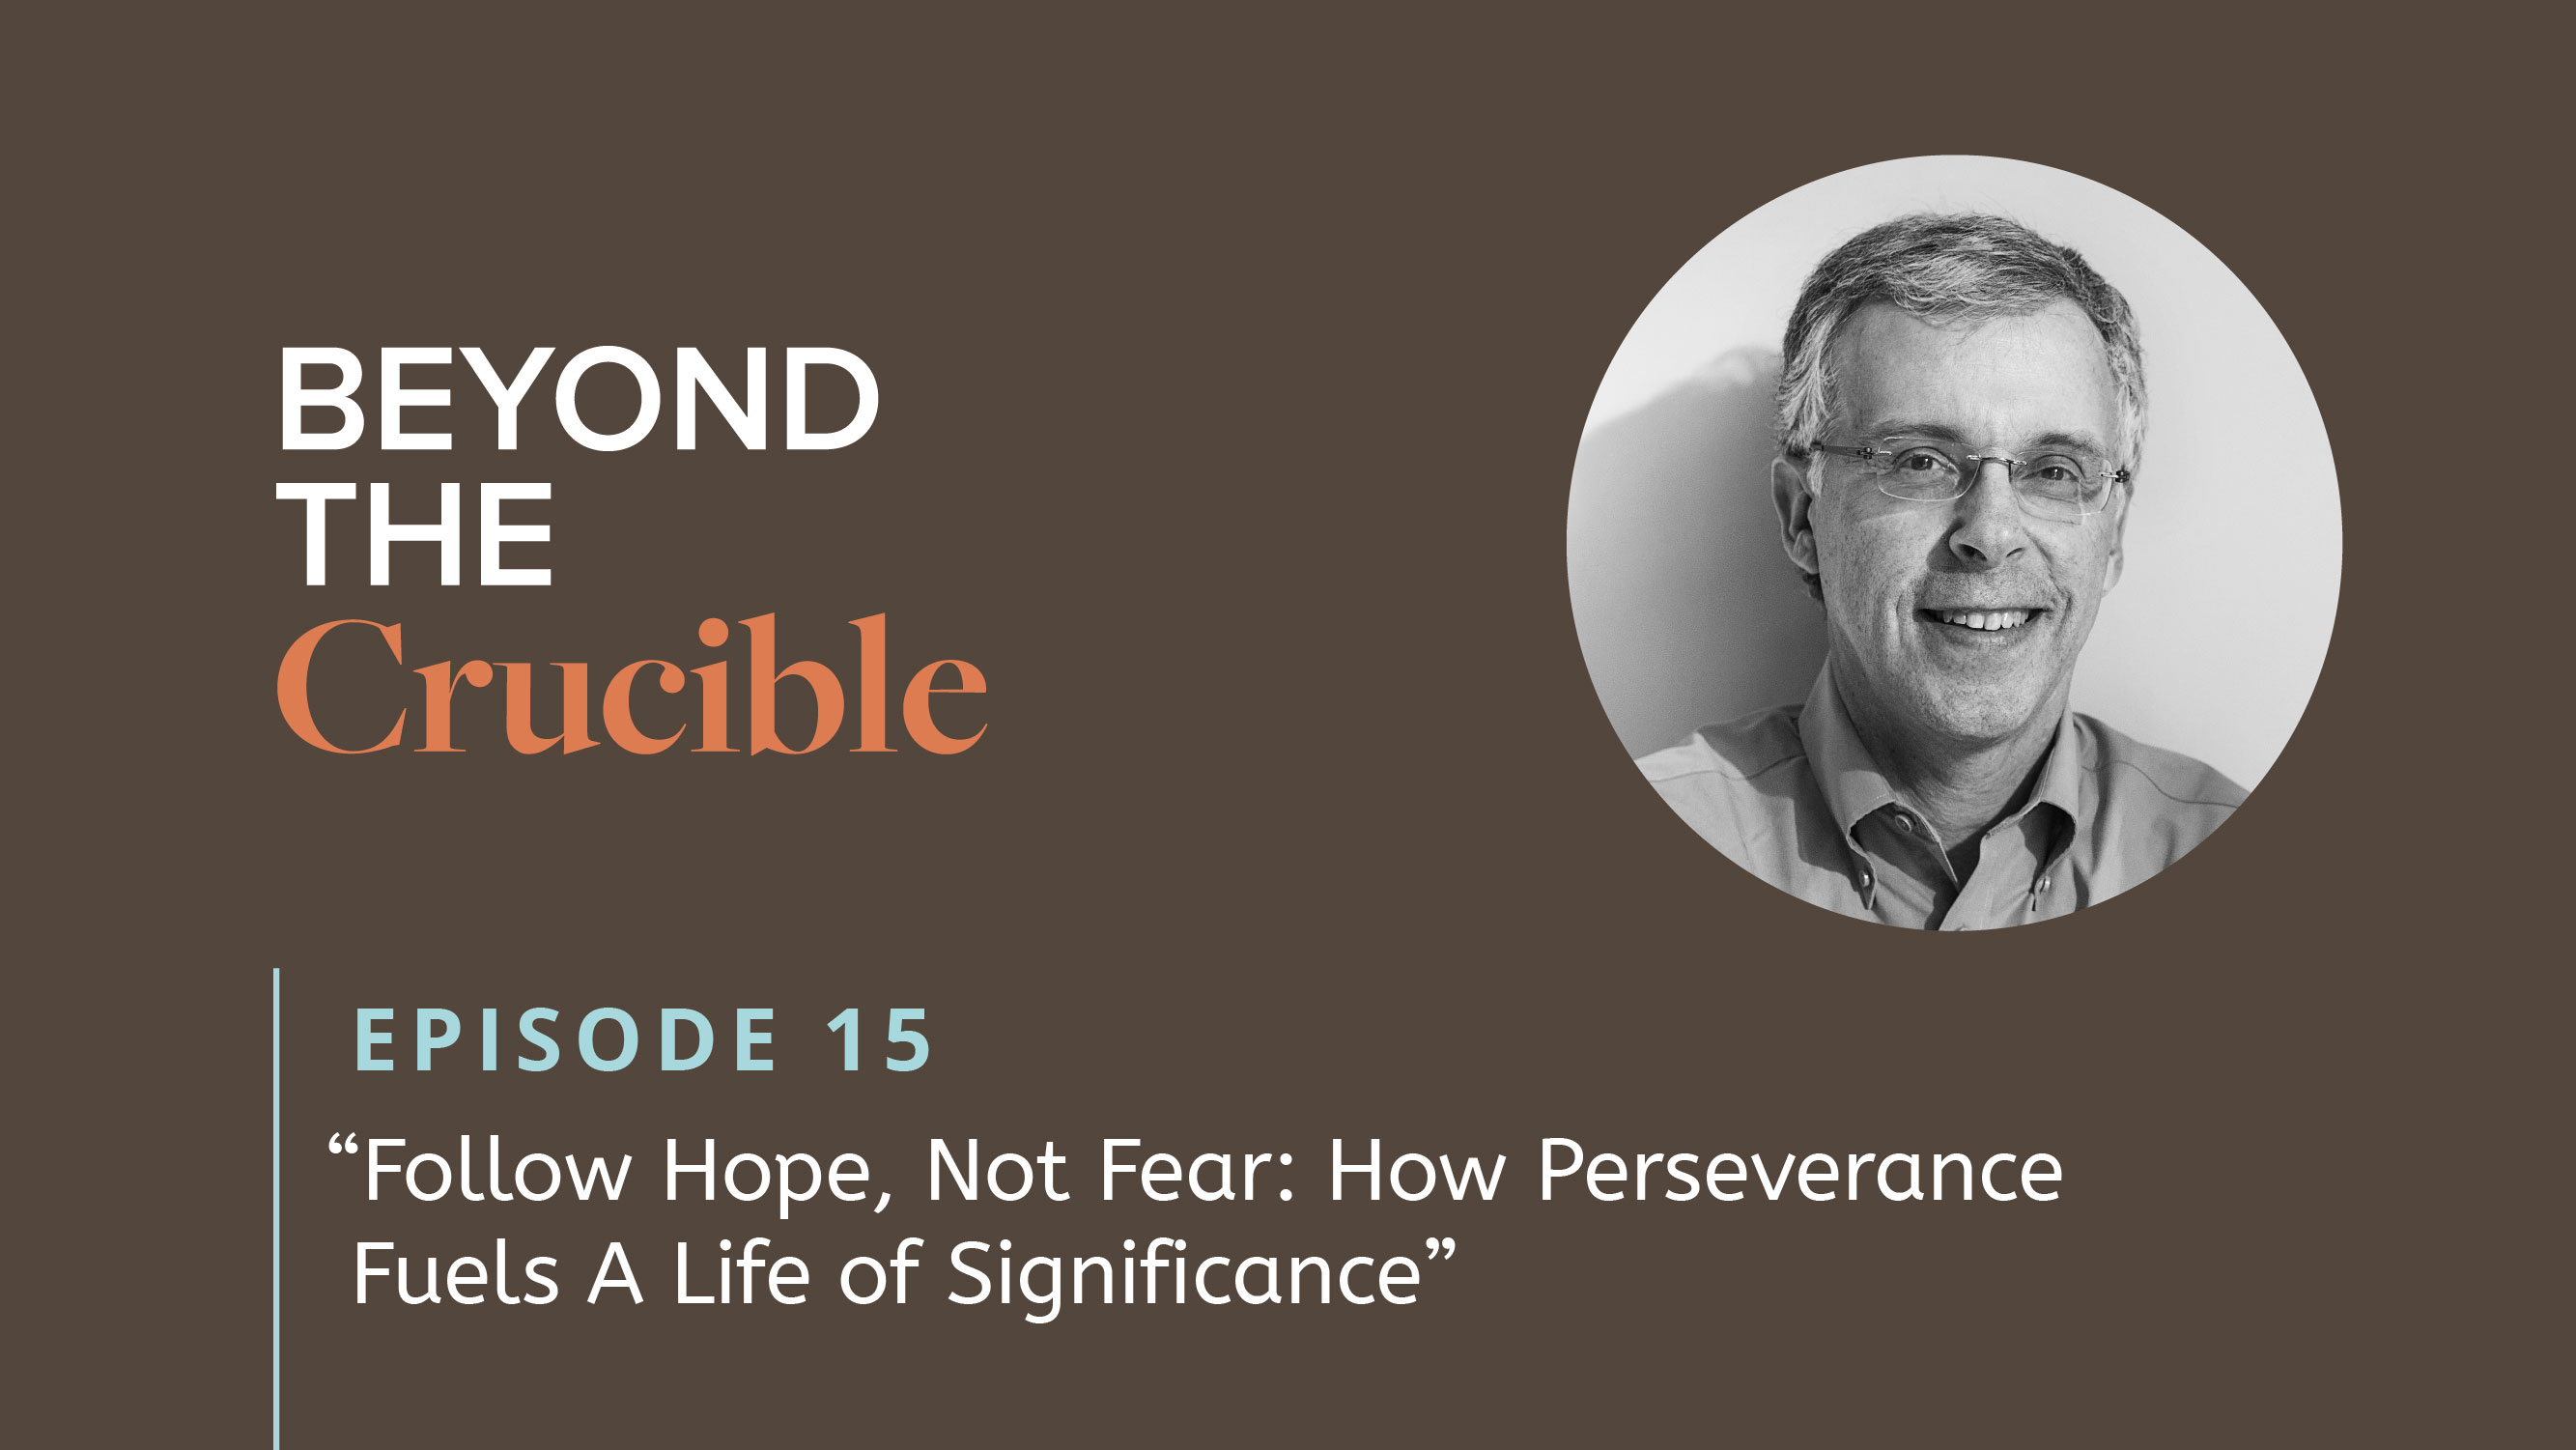 Follow Hope, Not Fear: How Perseverance Fuels A Life of Significance #15